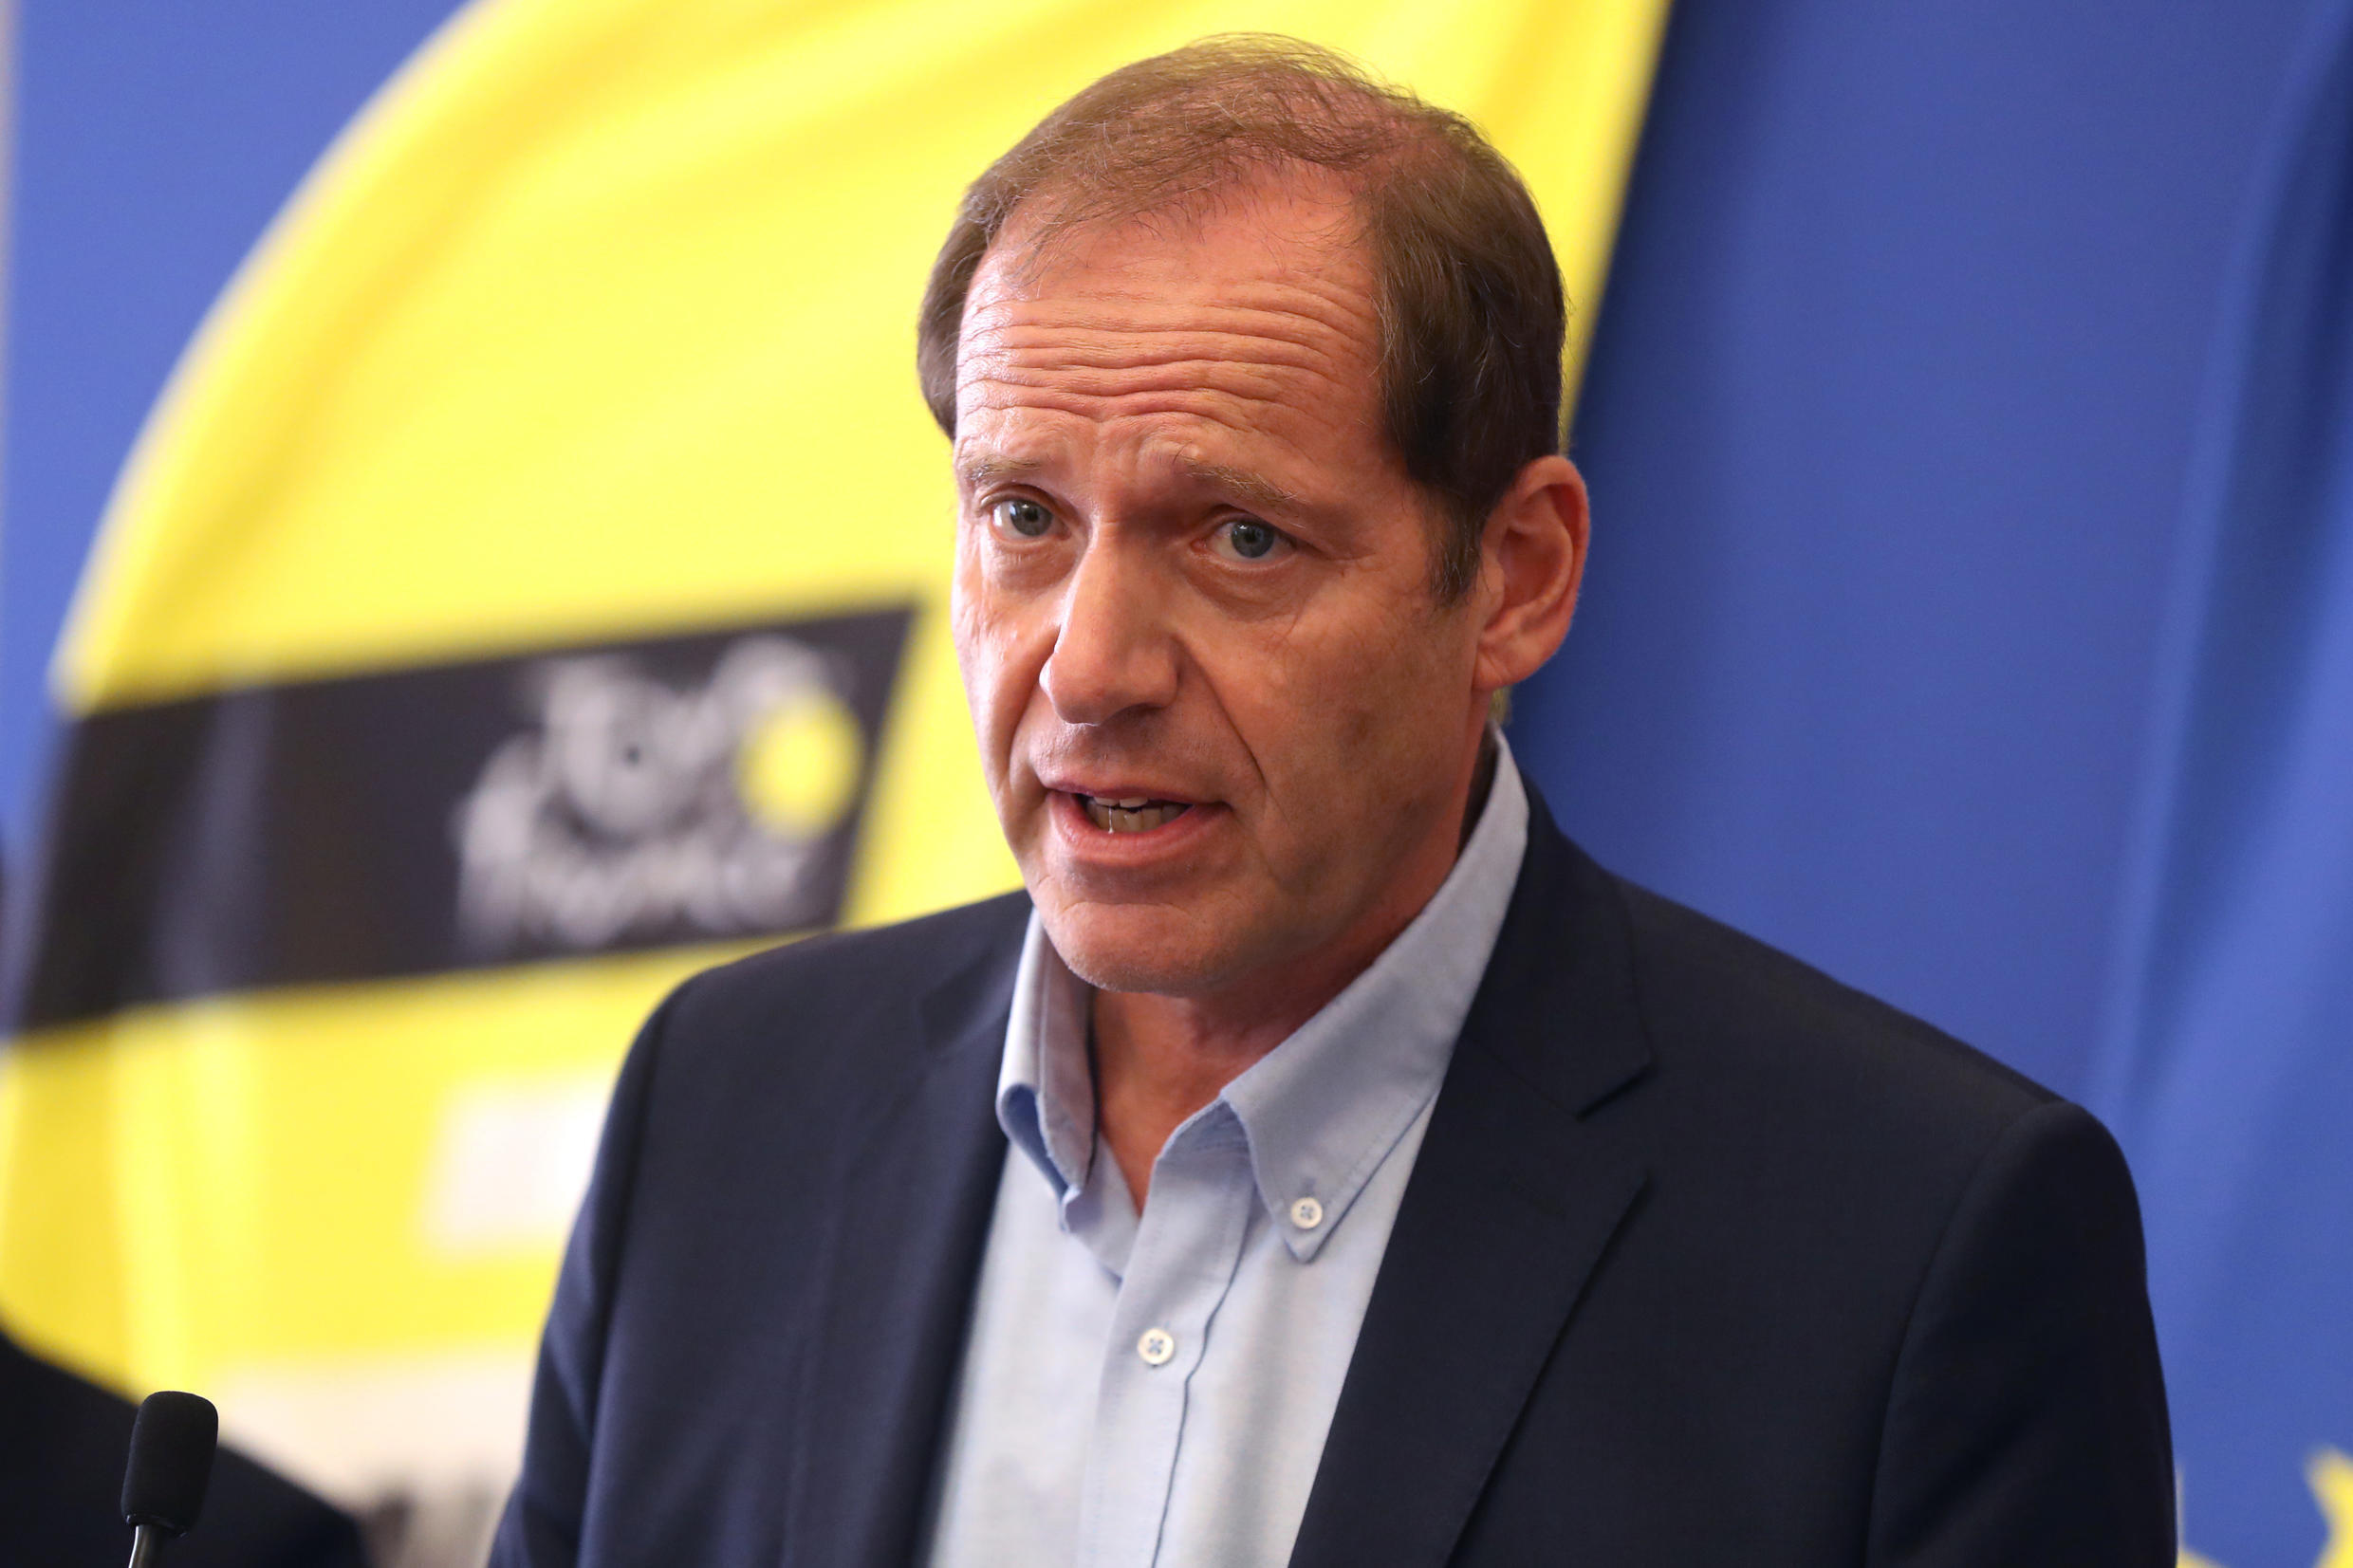 Tour de France director Christian Prudhomme in Nice, France, on August 19, 2020.